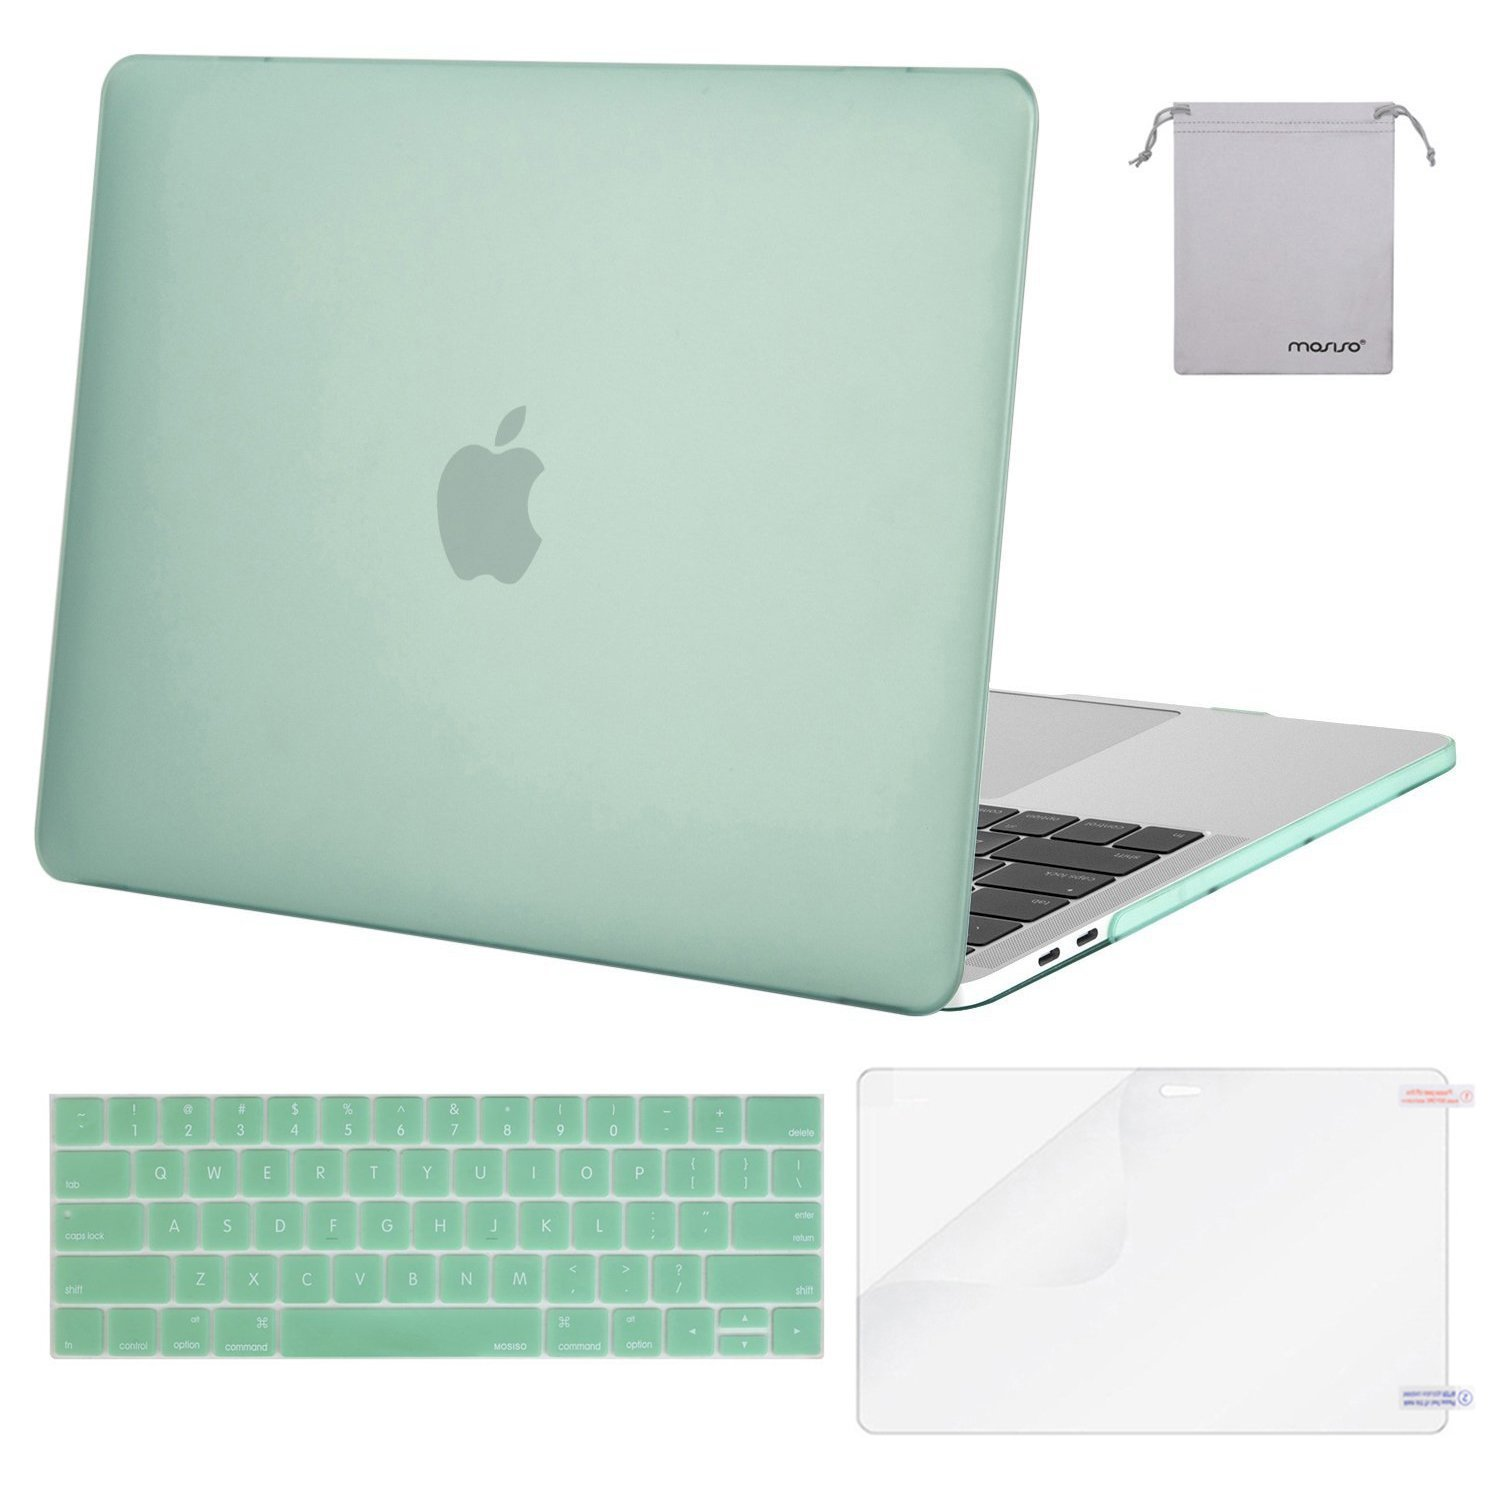 Mosiso MacBook Pro 13 Case 2018 2017 2016 Release A1989/A1706/A1708, Plastic Hard Case Shell with Keyboard Cover with Screen Protector with Storage Bag for Newest MacBook Pro 13 Inch, Mint Green